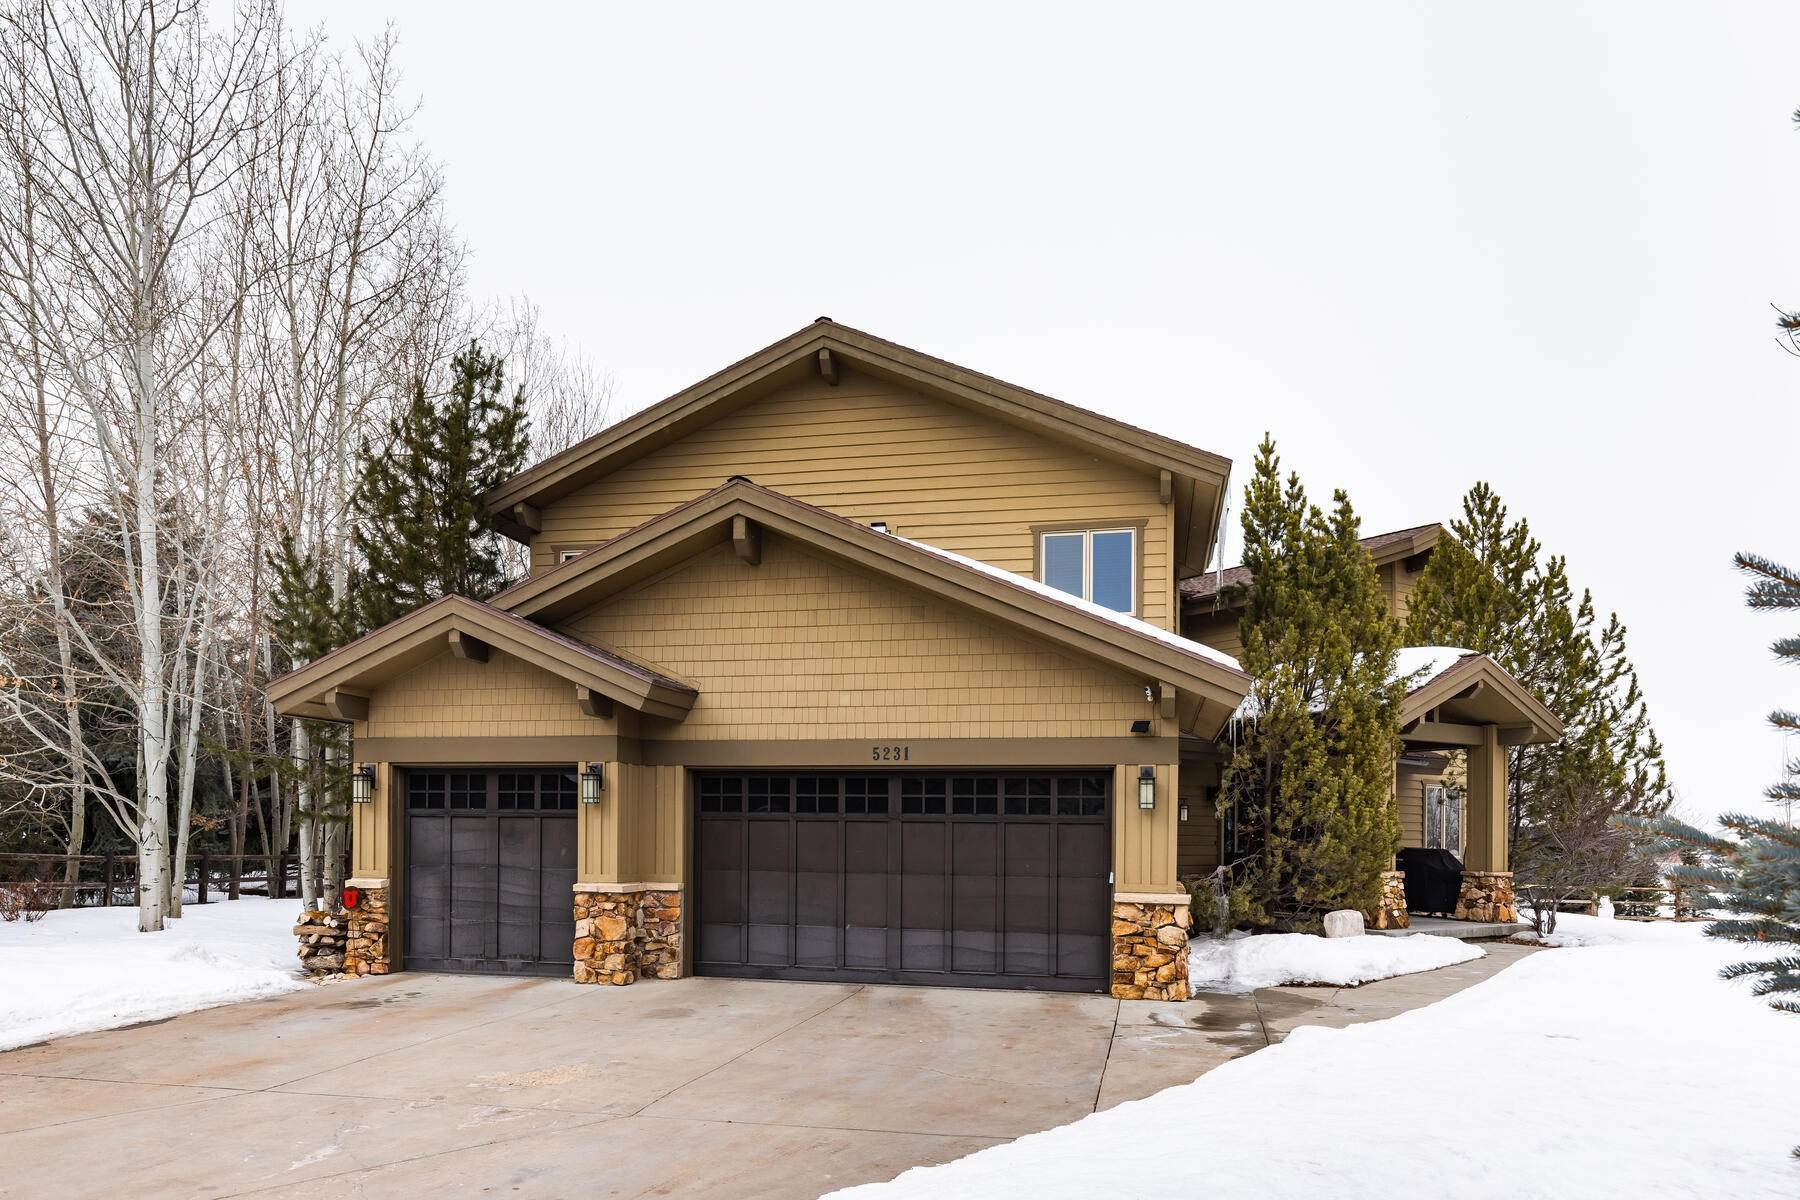 Single Family Homes for Sale at Rare Listing in Ranch Place 5231 Sandhill Court Park City, Utah 84098 United States